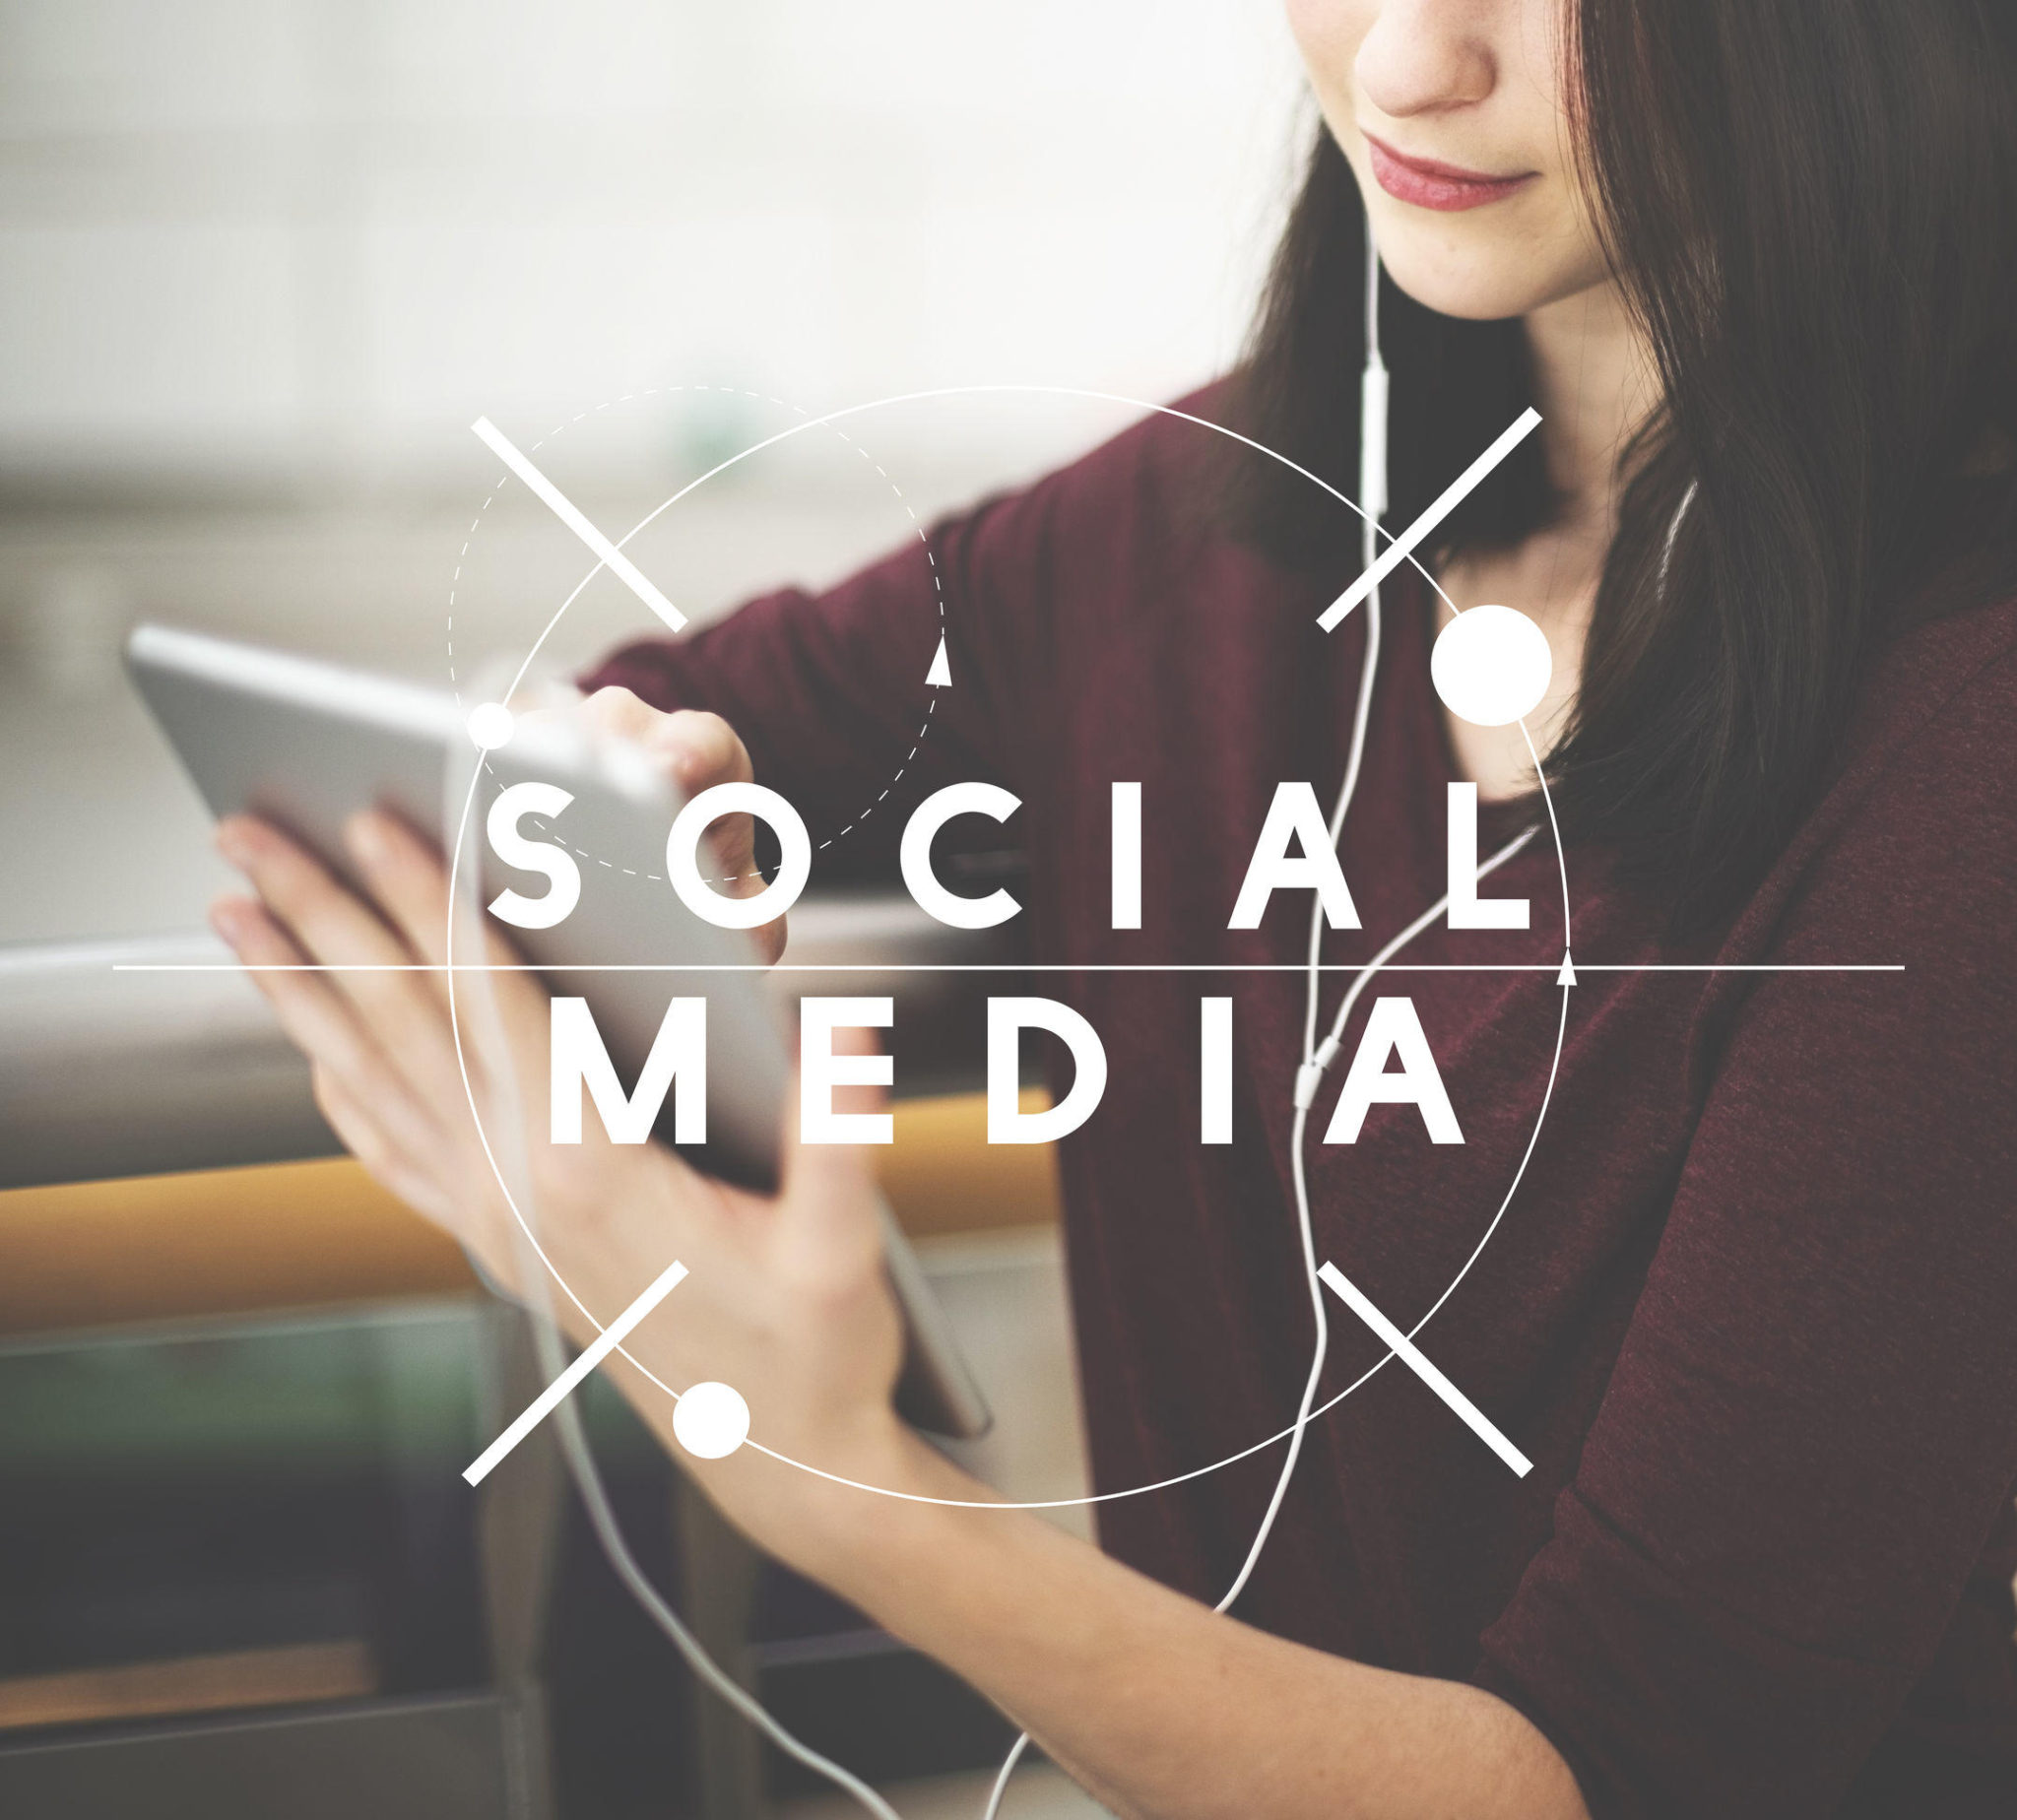 56320182 – social media networking communication connection concept